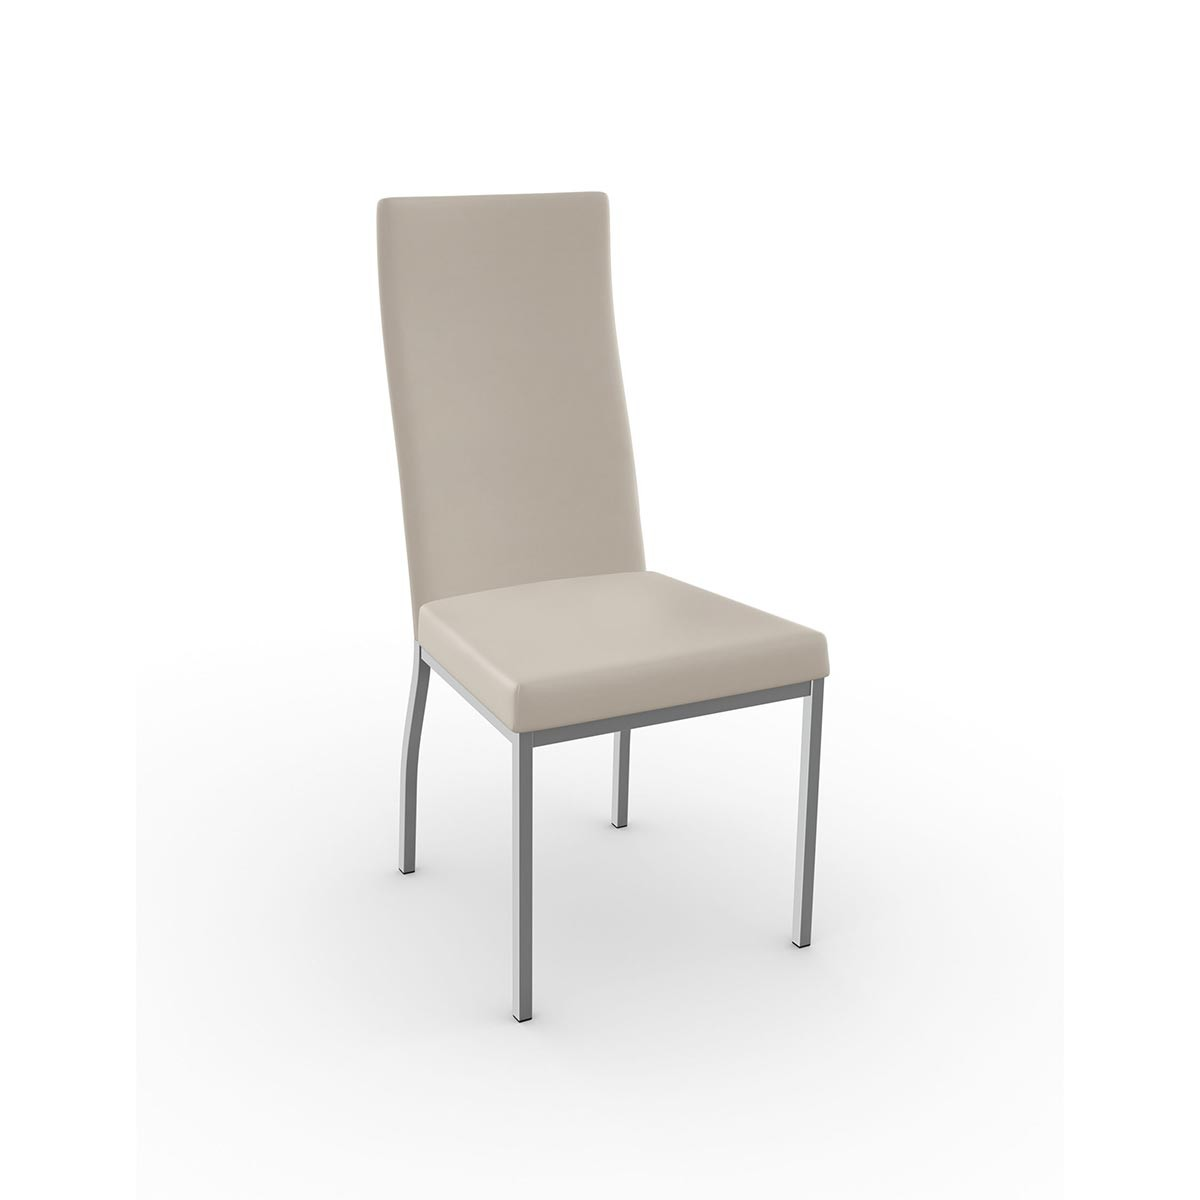 Amisco Curve Dining Side Chair from $199 00 by Amisco